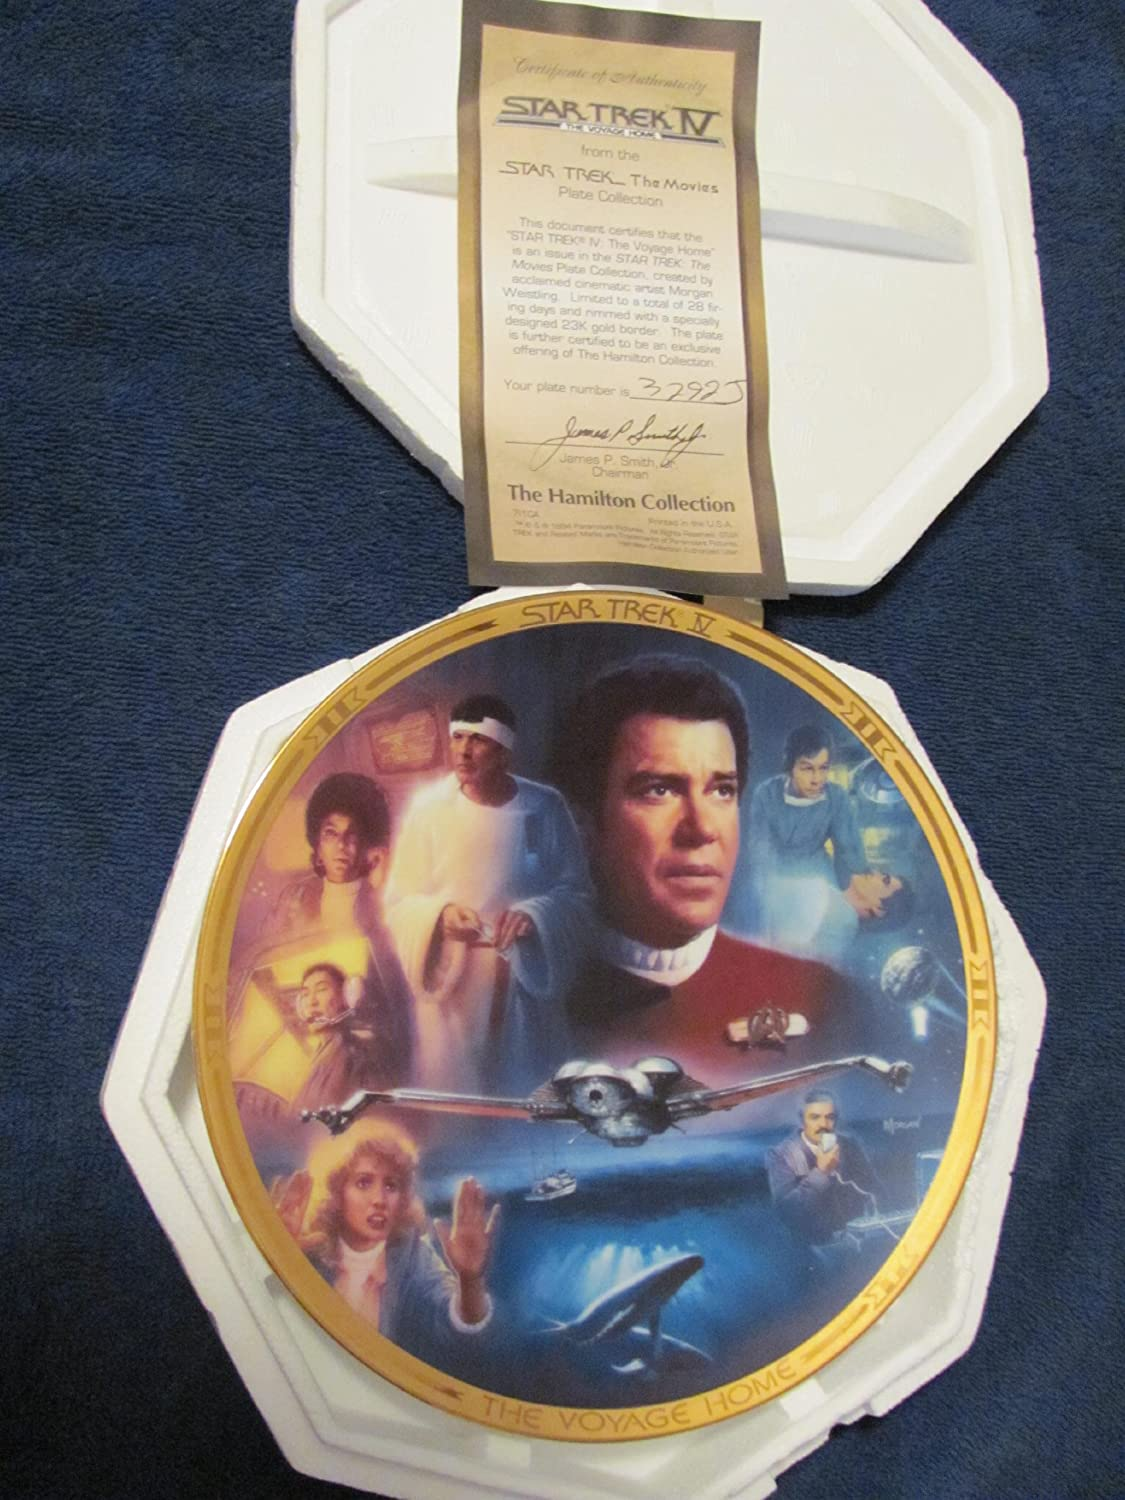 Star Trek IV The Voyage Home Collector's Plate: The Hamilton Collection 1994 Presents Star Trek Iv: The Movies Plate Collection византийская армия iv xiiвв